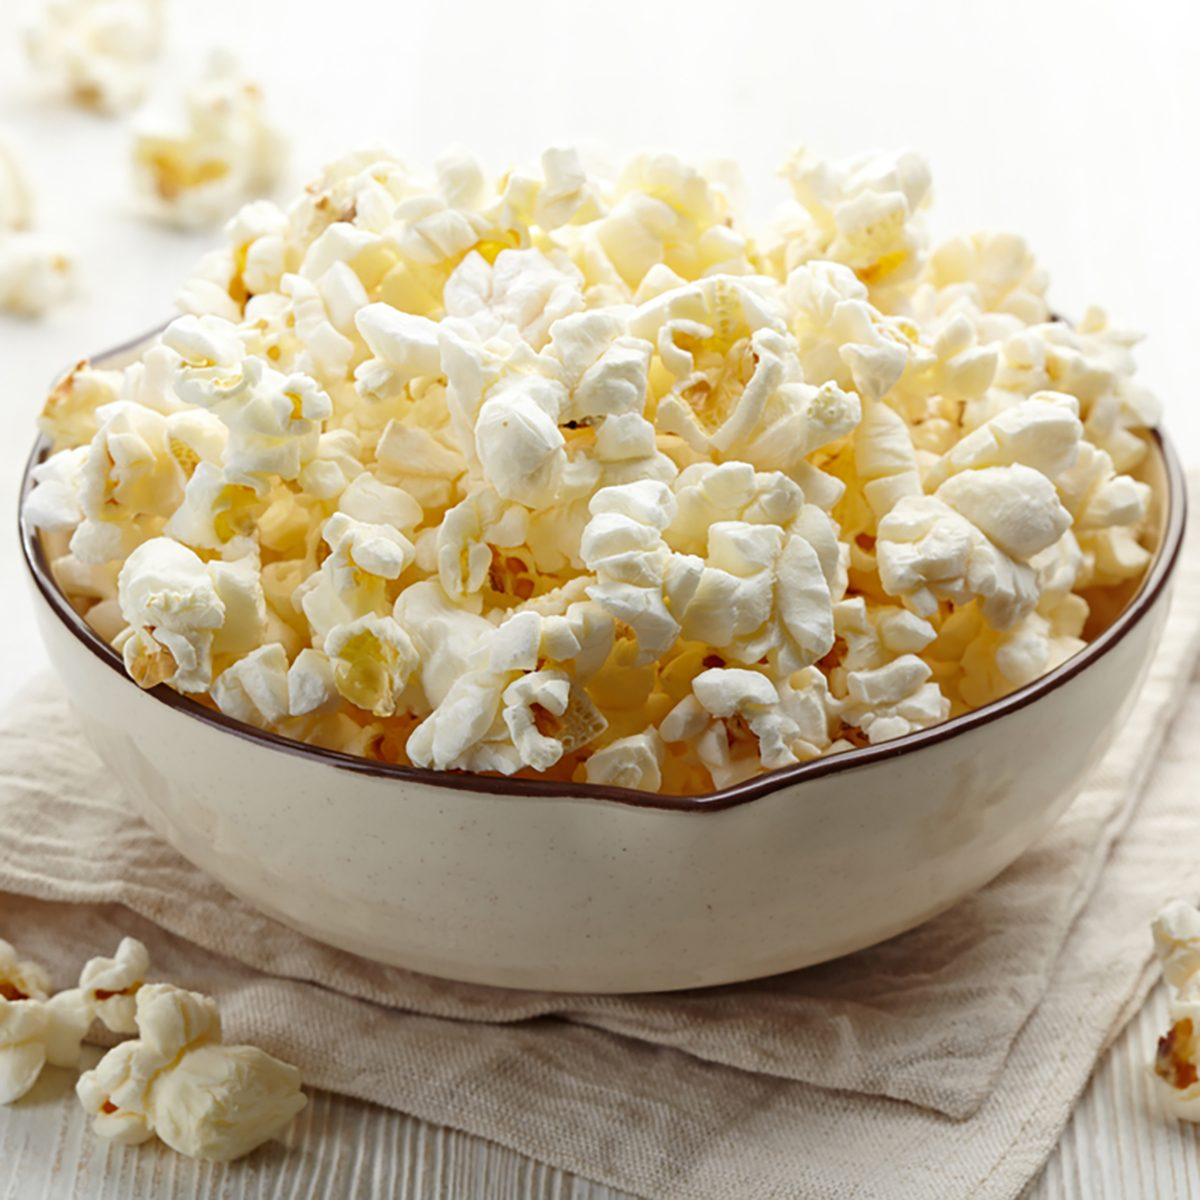 Bowl of fresh popcorn on white wooden background